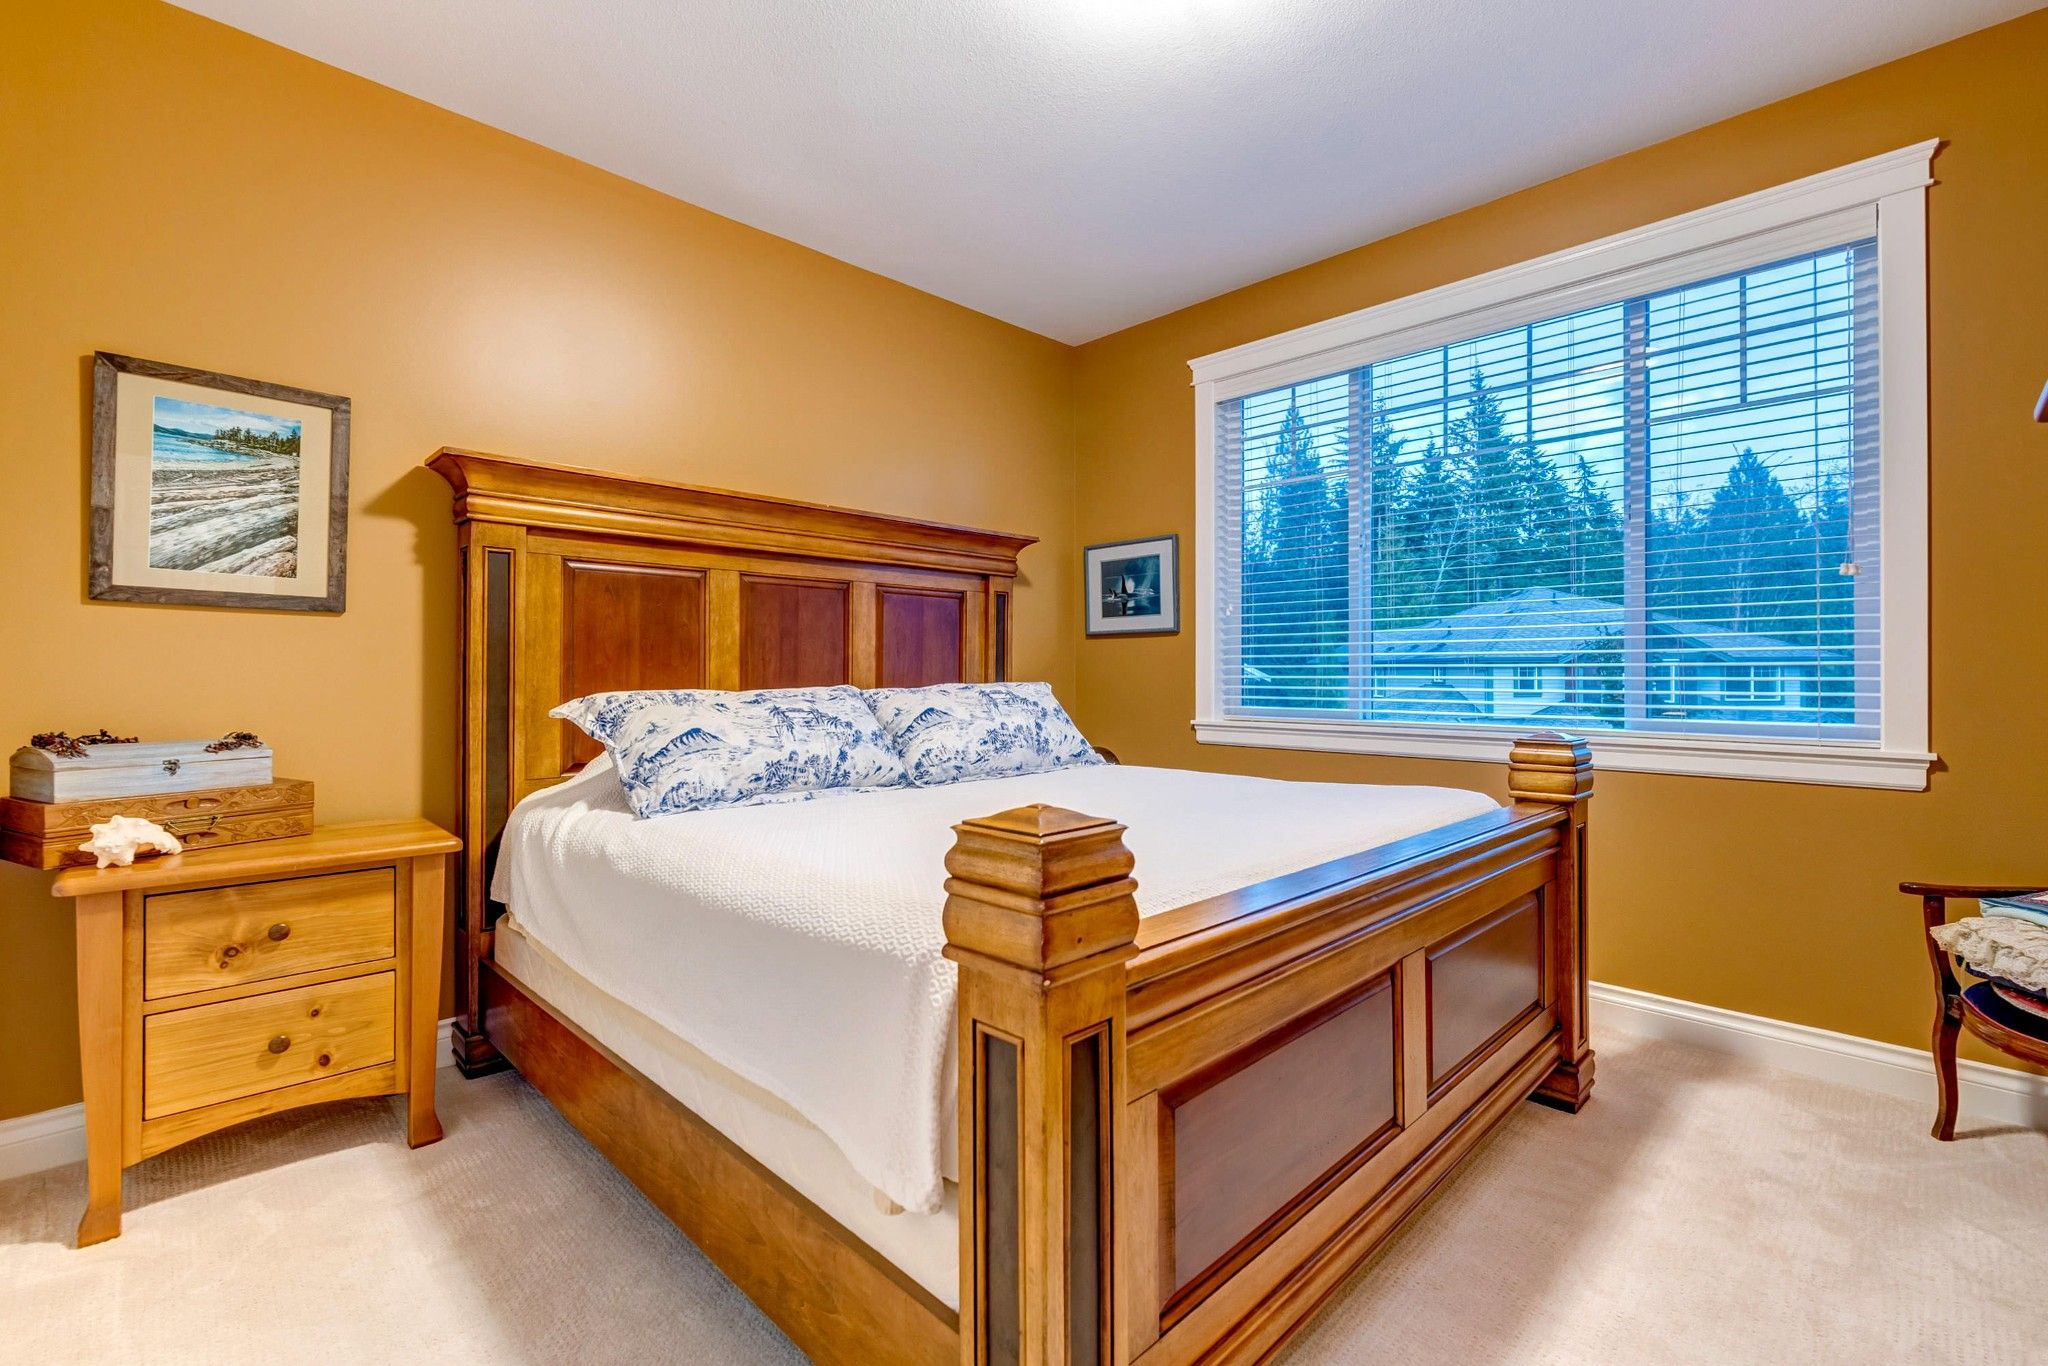 Photo 13: Photos: 16 13210 SHOESMITH CRESCENT in Maple Ridge: Silver Valley House for sale : MLS®# R2448043